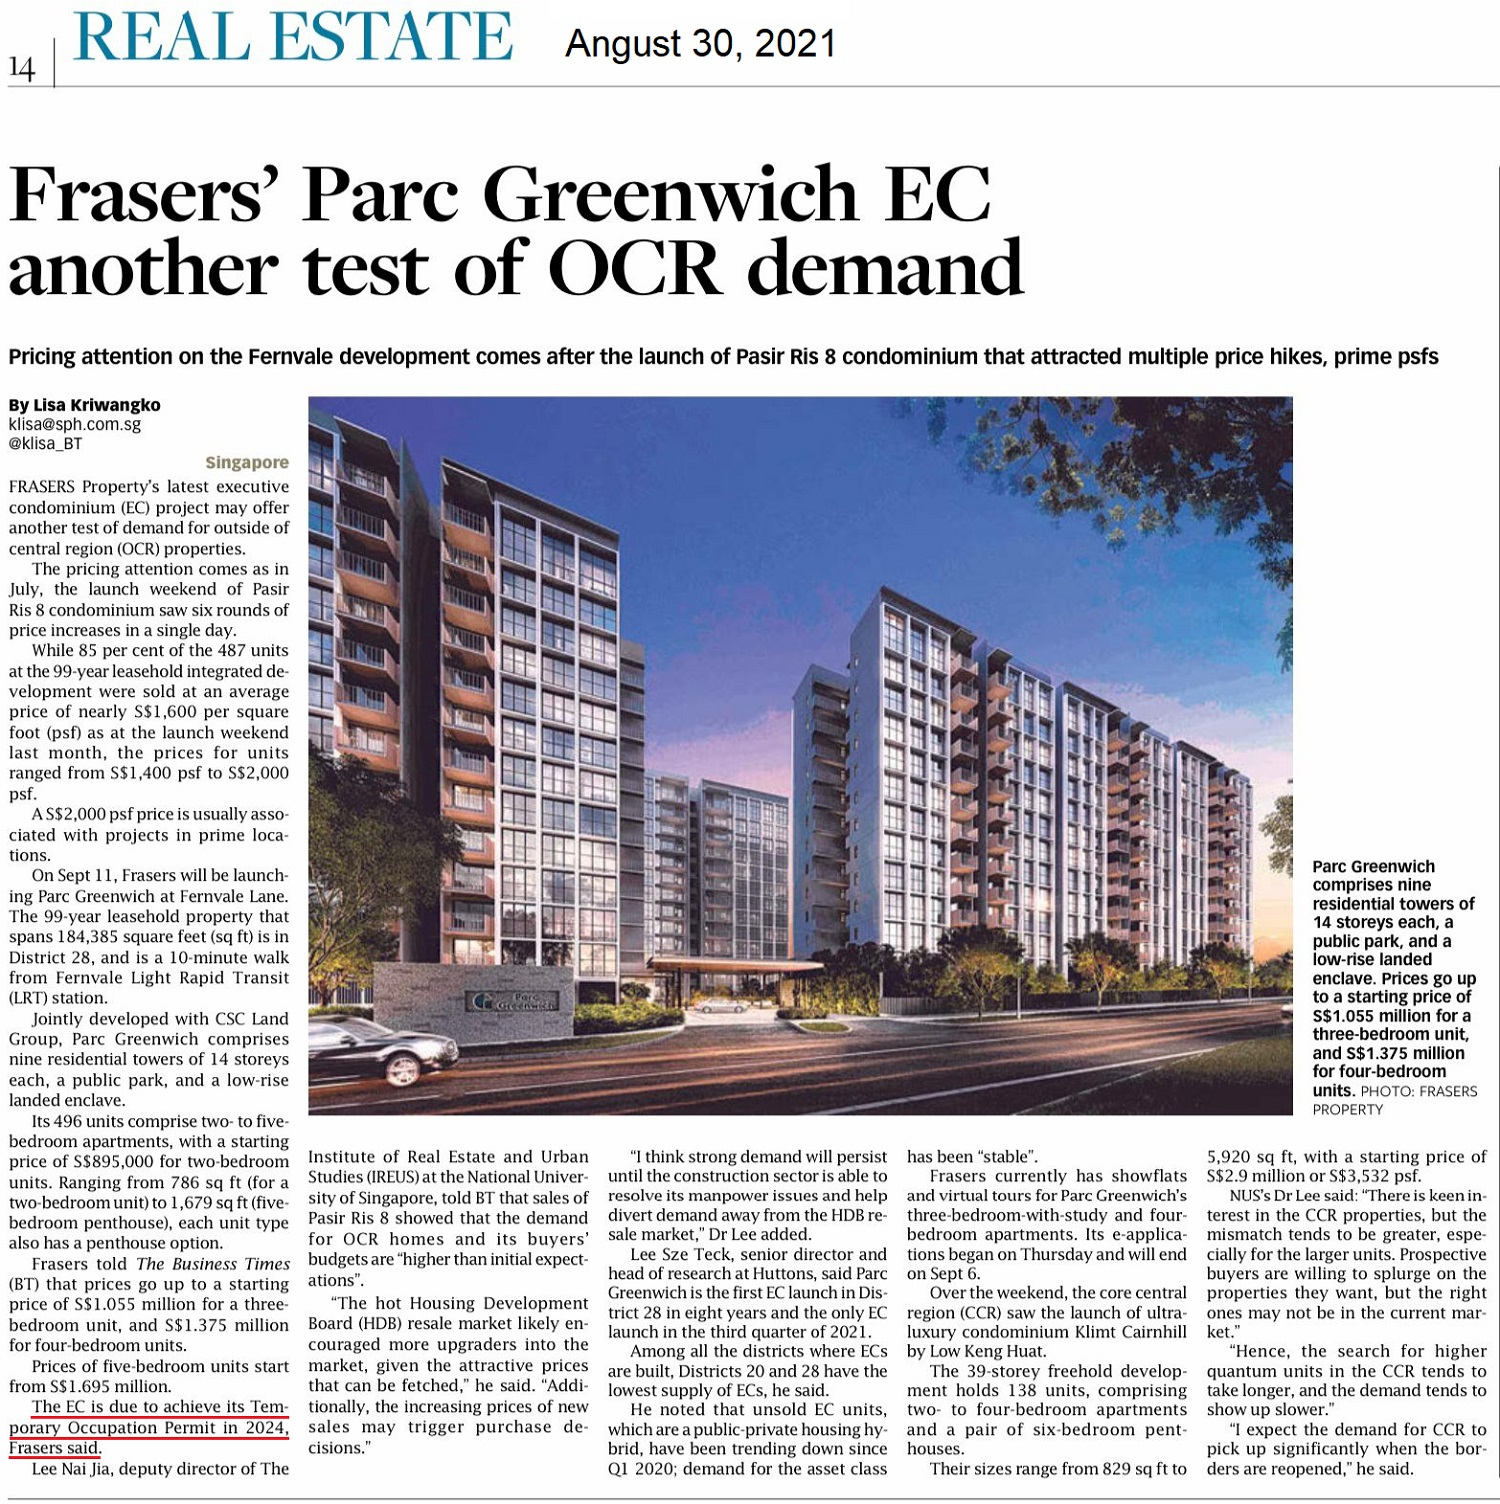 Frasers Parc Greenwich EC News on Business Times 30 Aug 2021